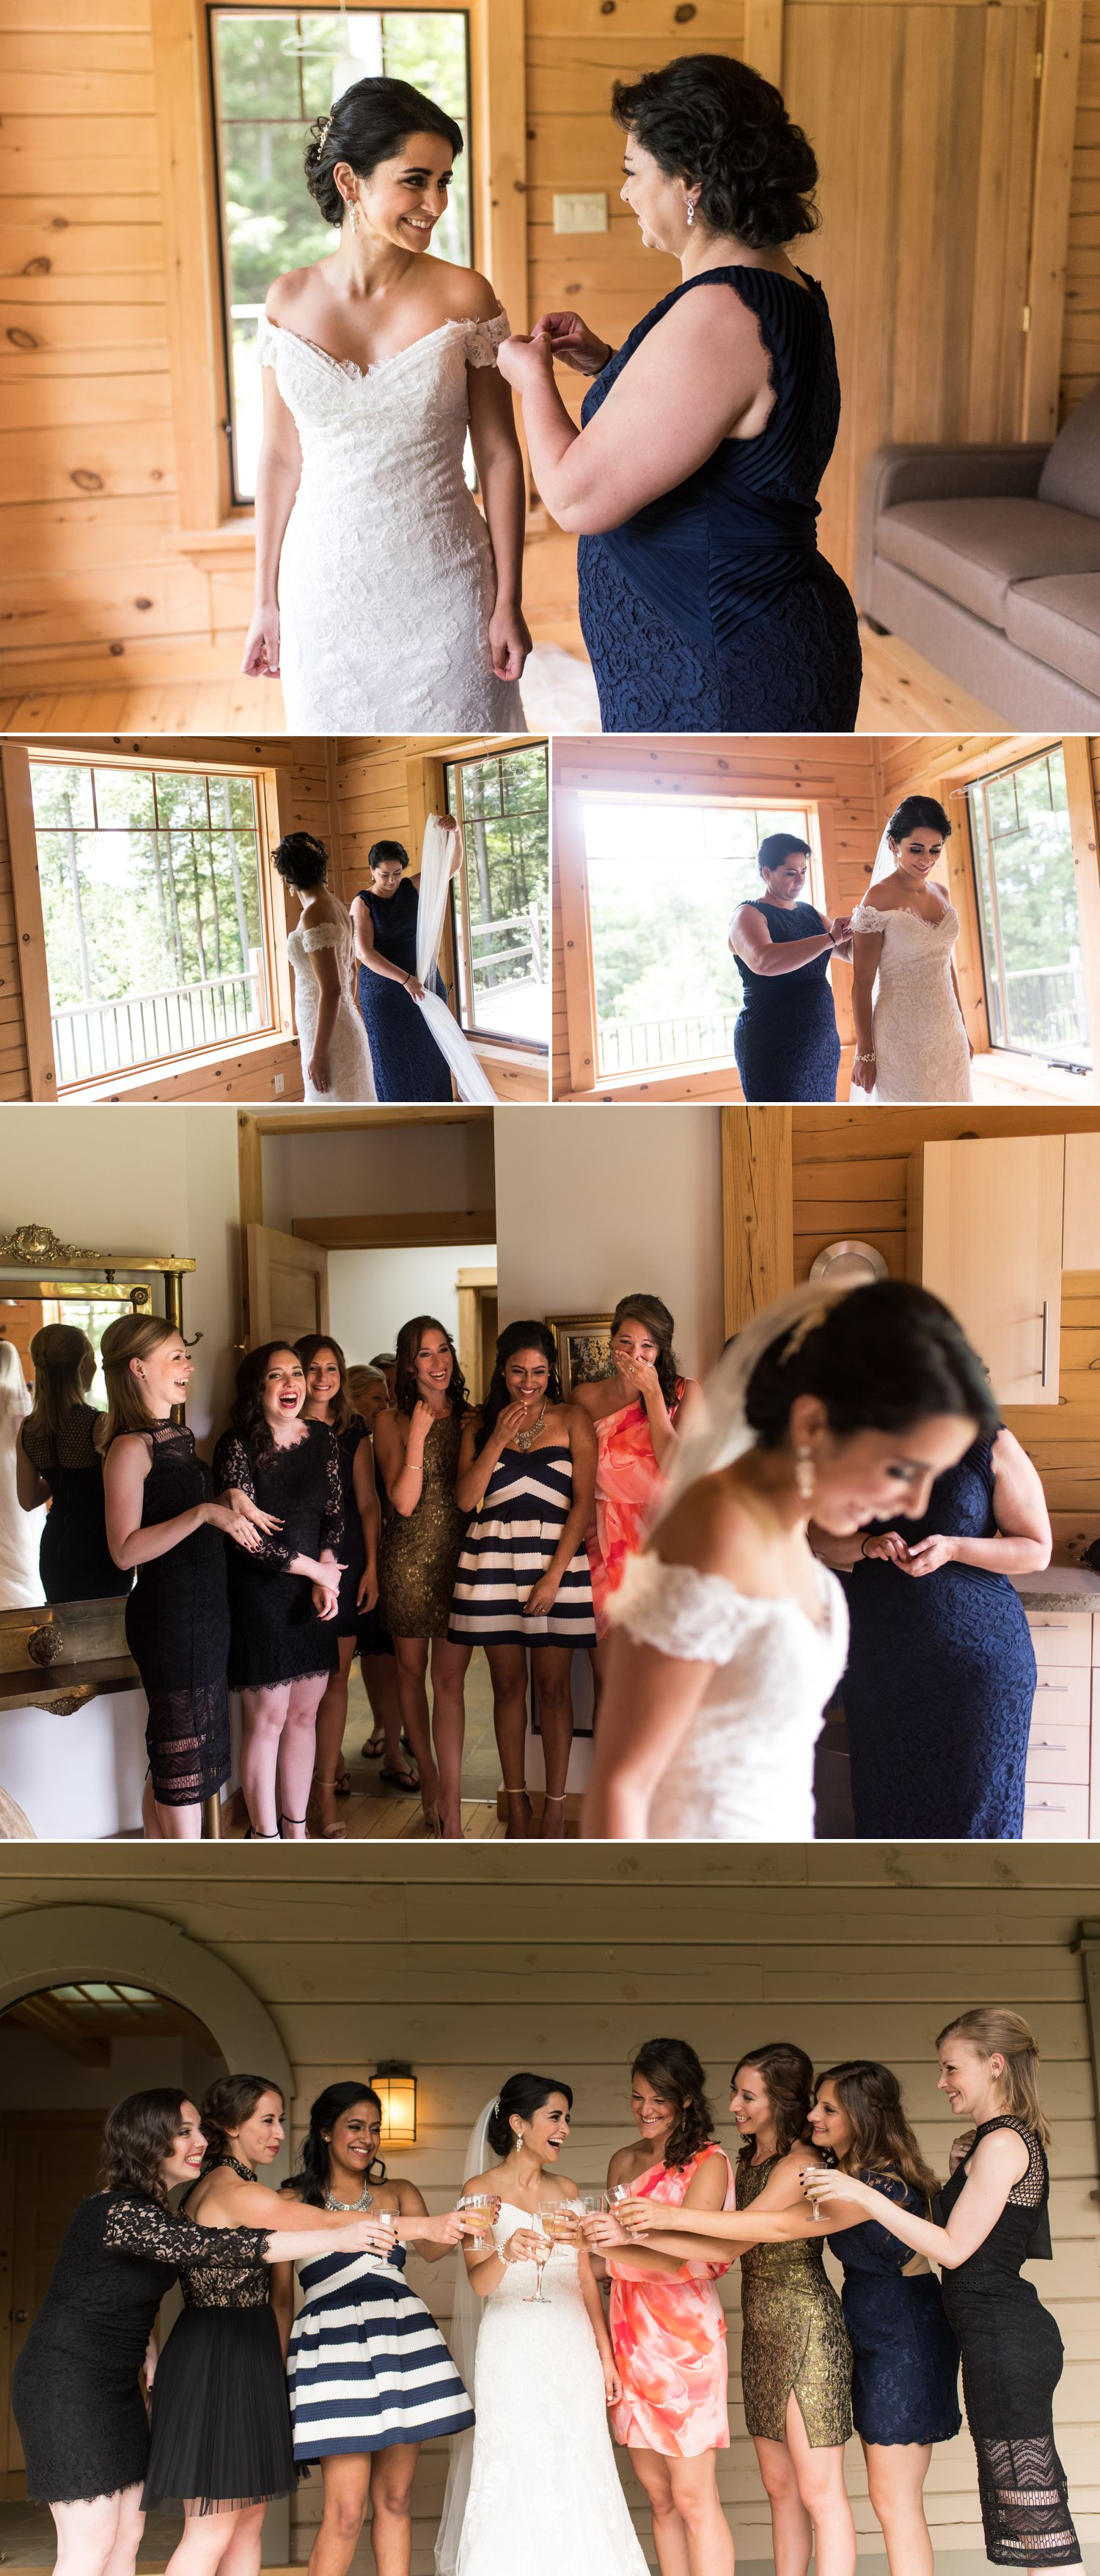 Bride and her friends together getting ready at Le Belvedere